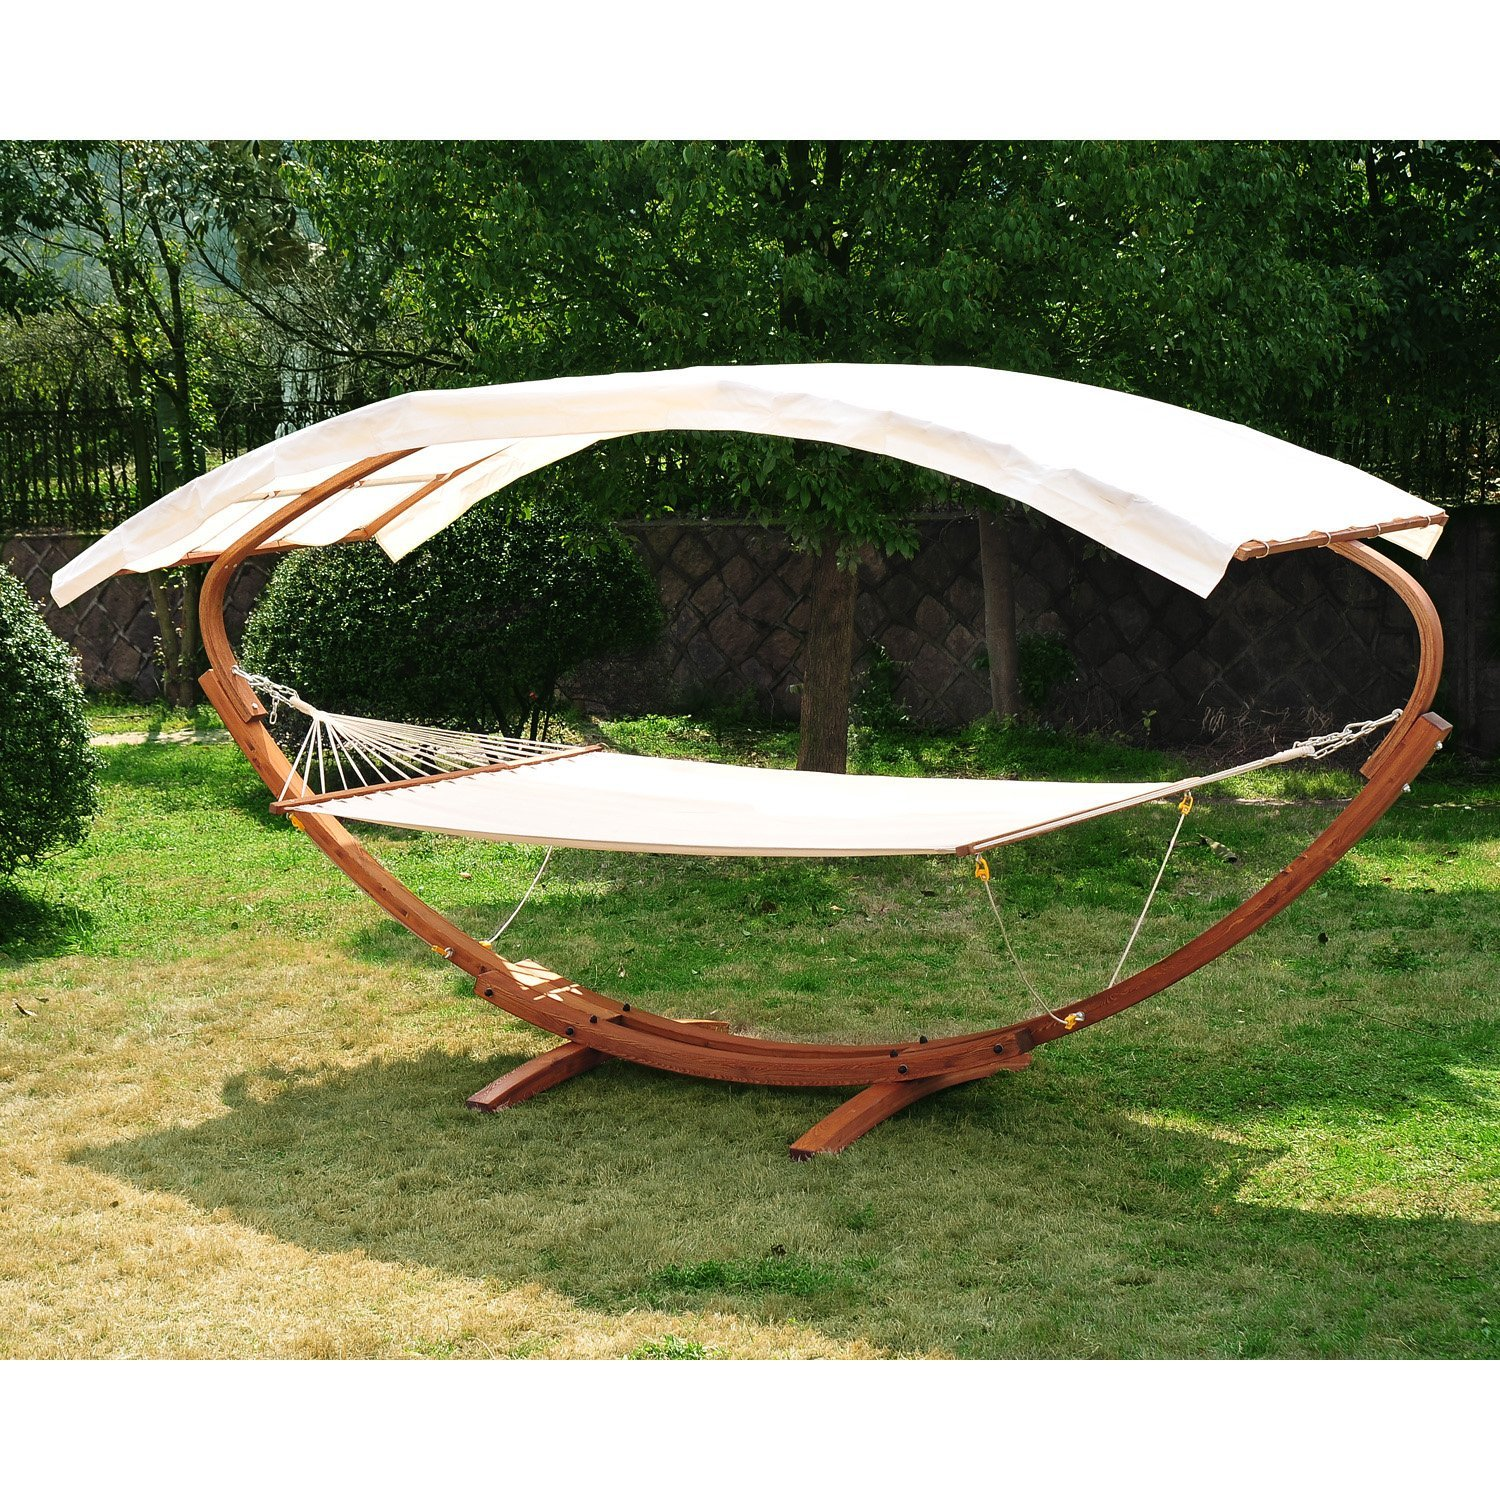 Image of CAD $359.99 Outsunny 2 Person Wood Swing Arc Hammock Bed and Stand Set with Canopy, White/Teak / w/ Canopy Canada 25093572203